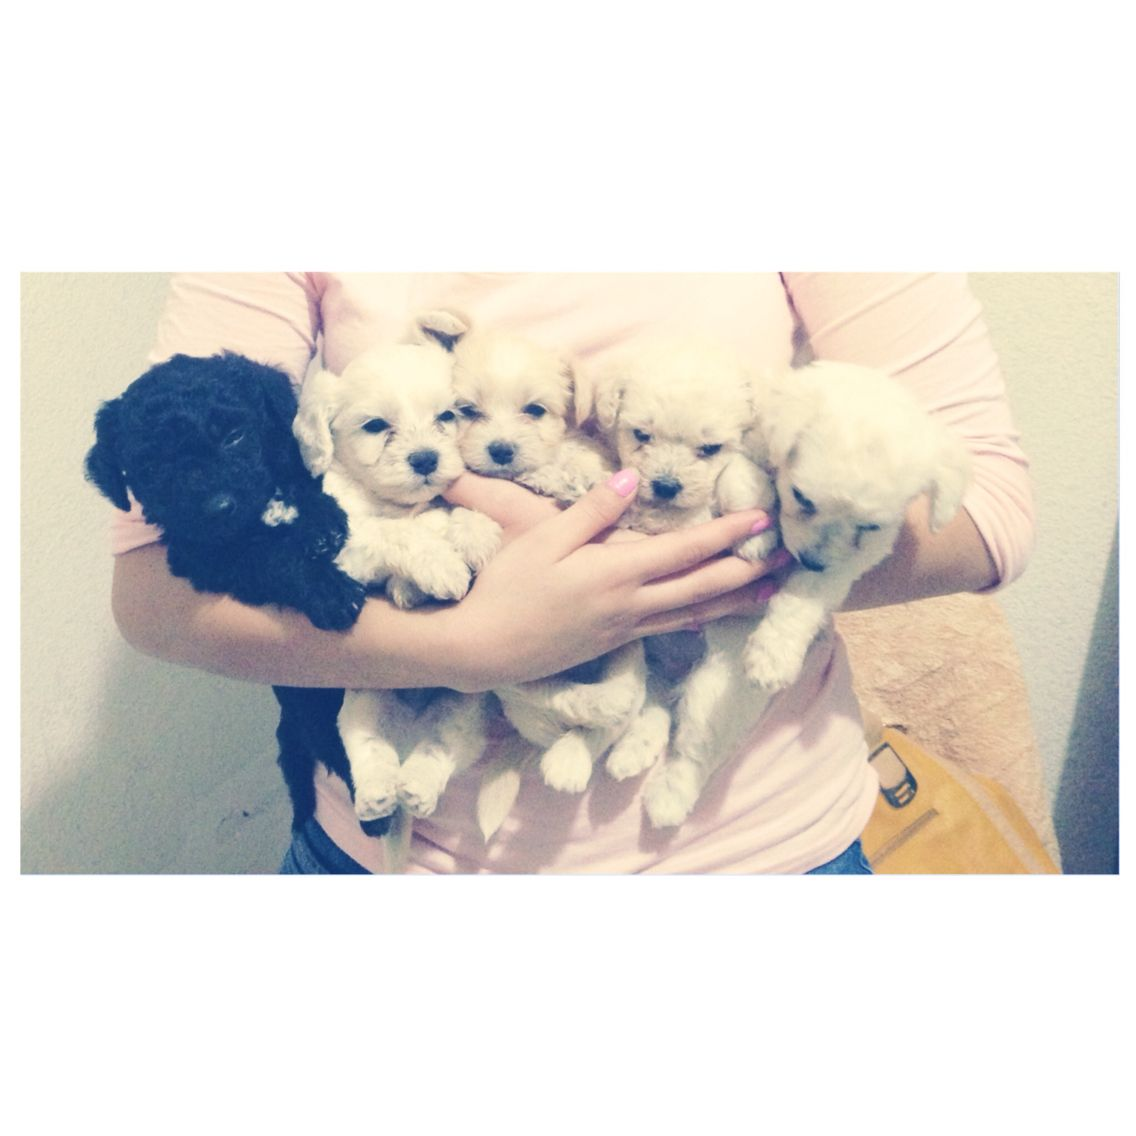 Little dogs...I LOVE THEM!!!!!